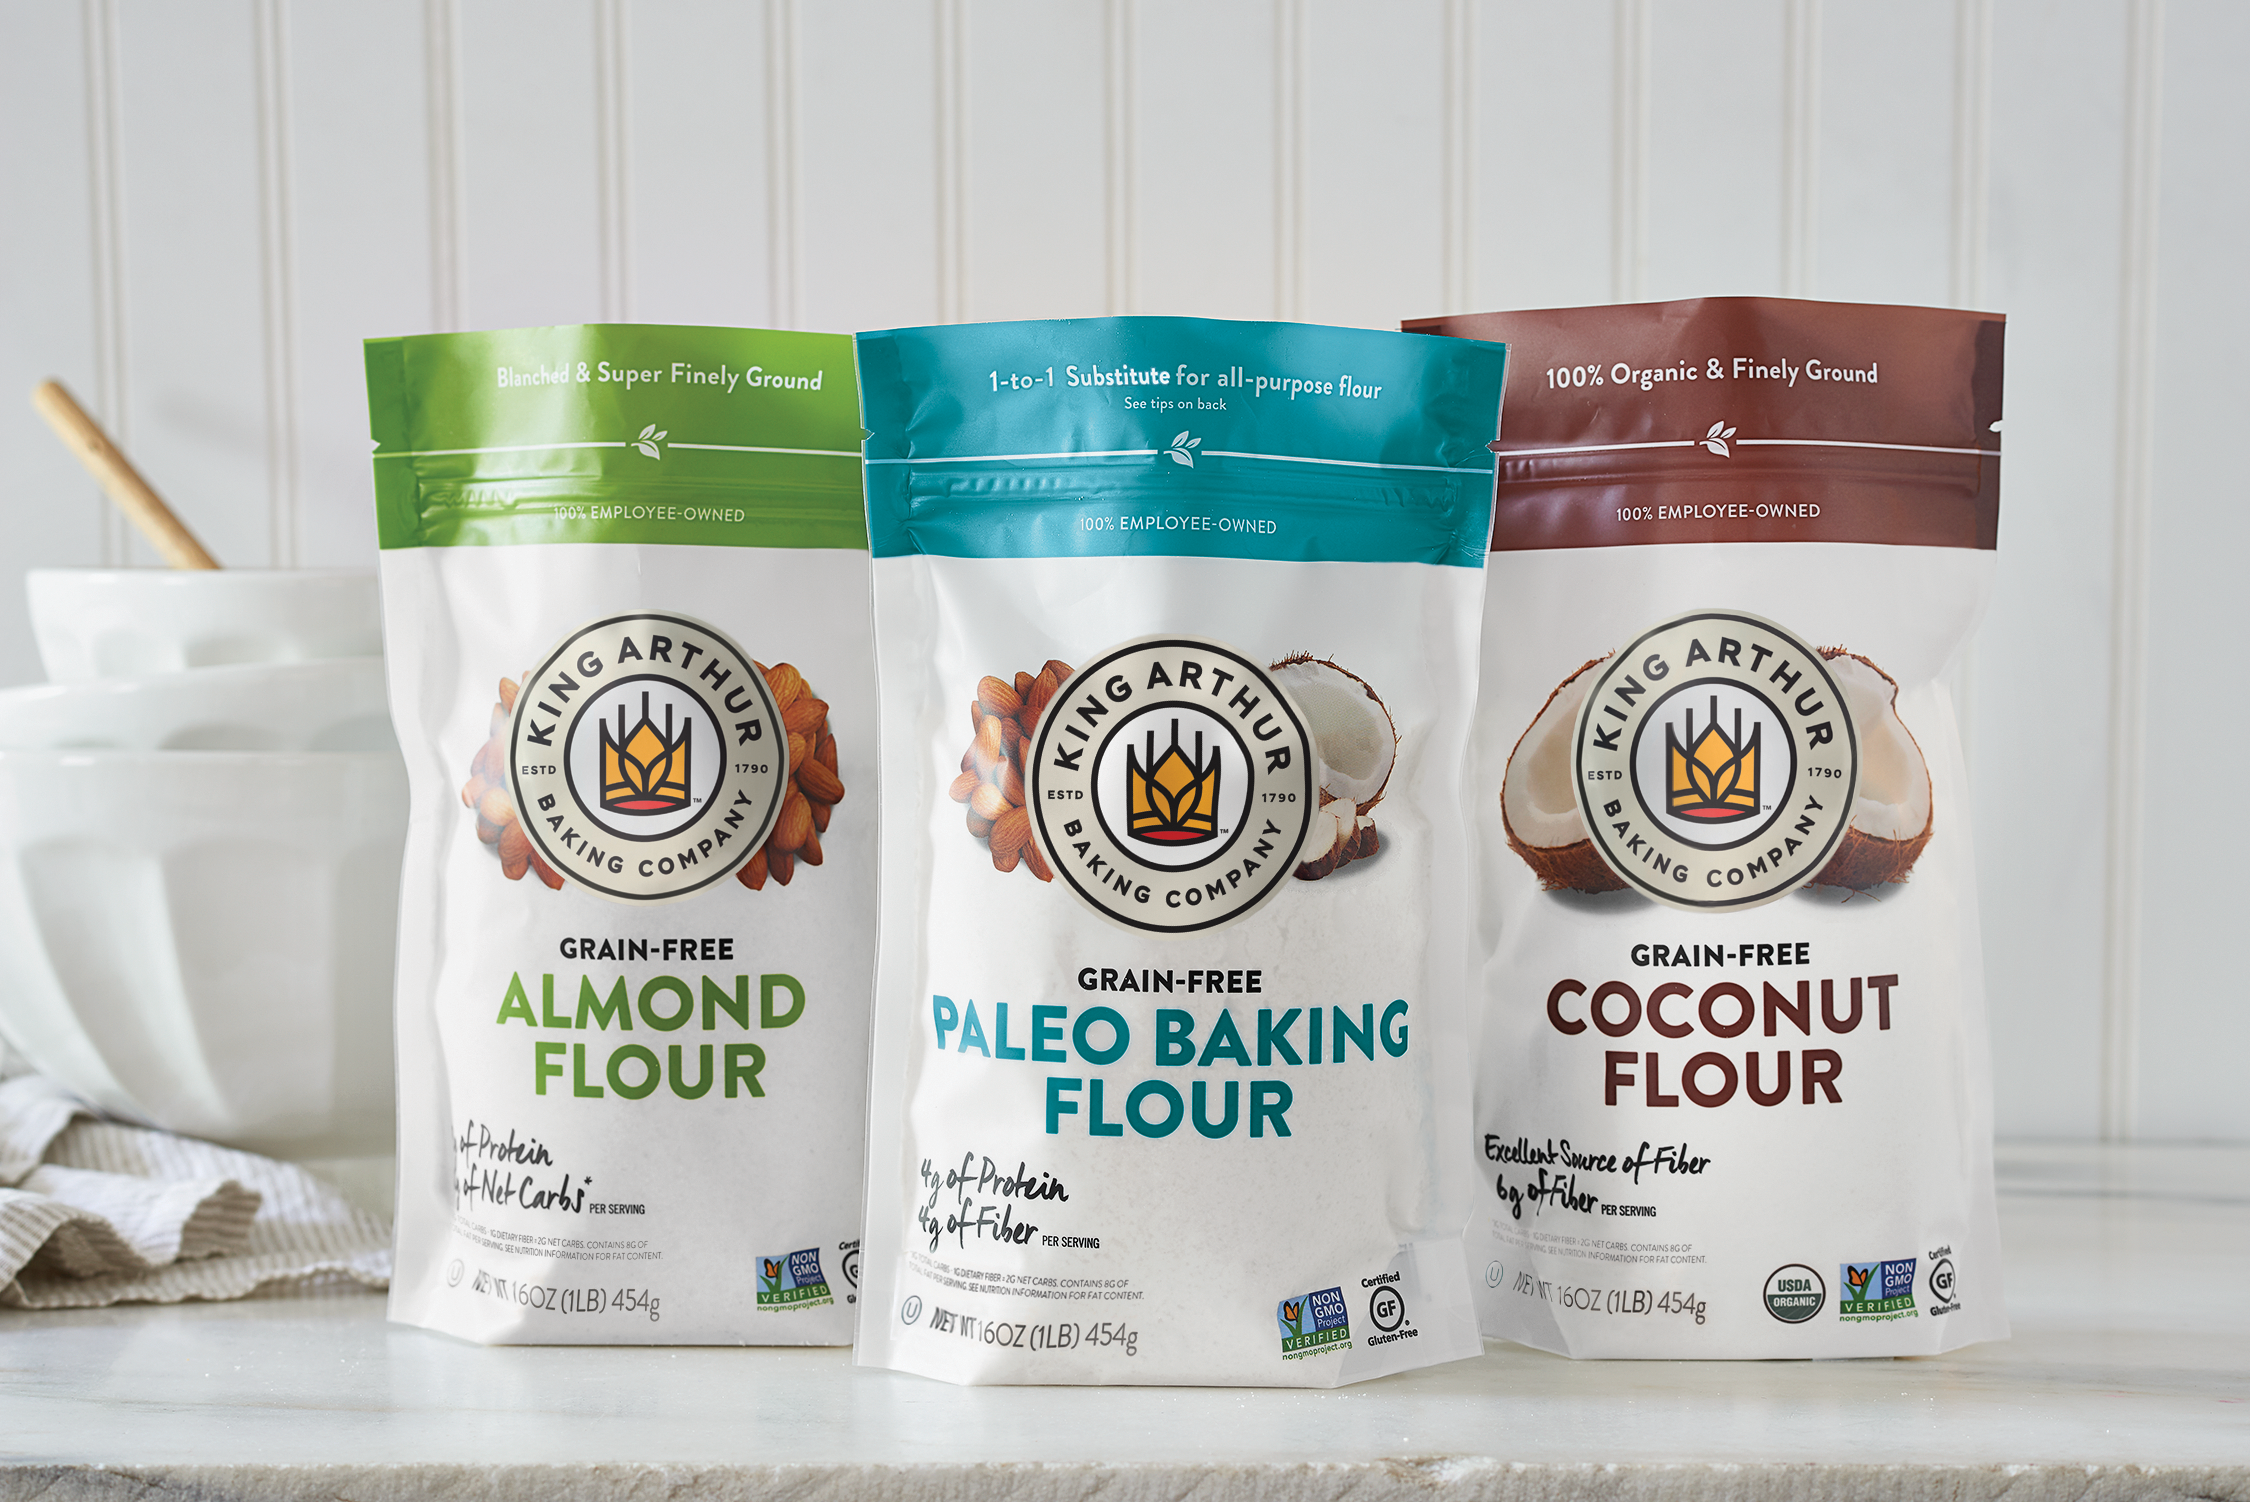 Line of grain free flours featuring updated King Arthur Baking Company logo